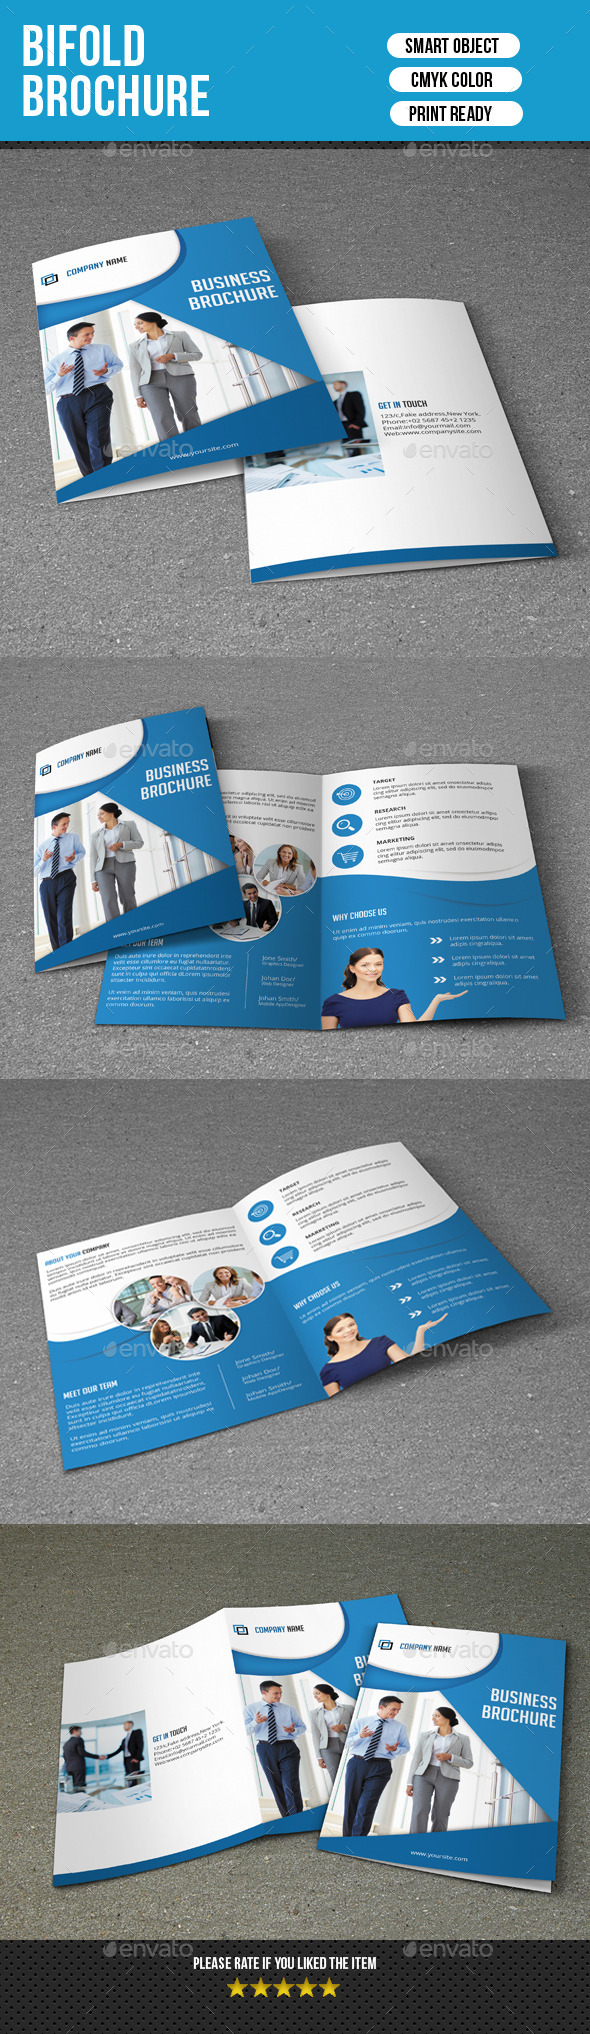 GraphicRiver Bifold Brochure for Business-V126 8814727